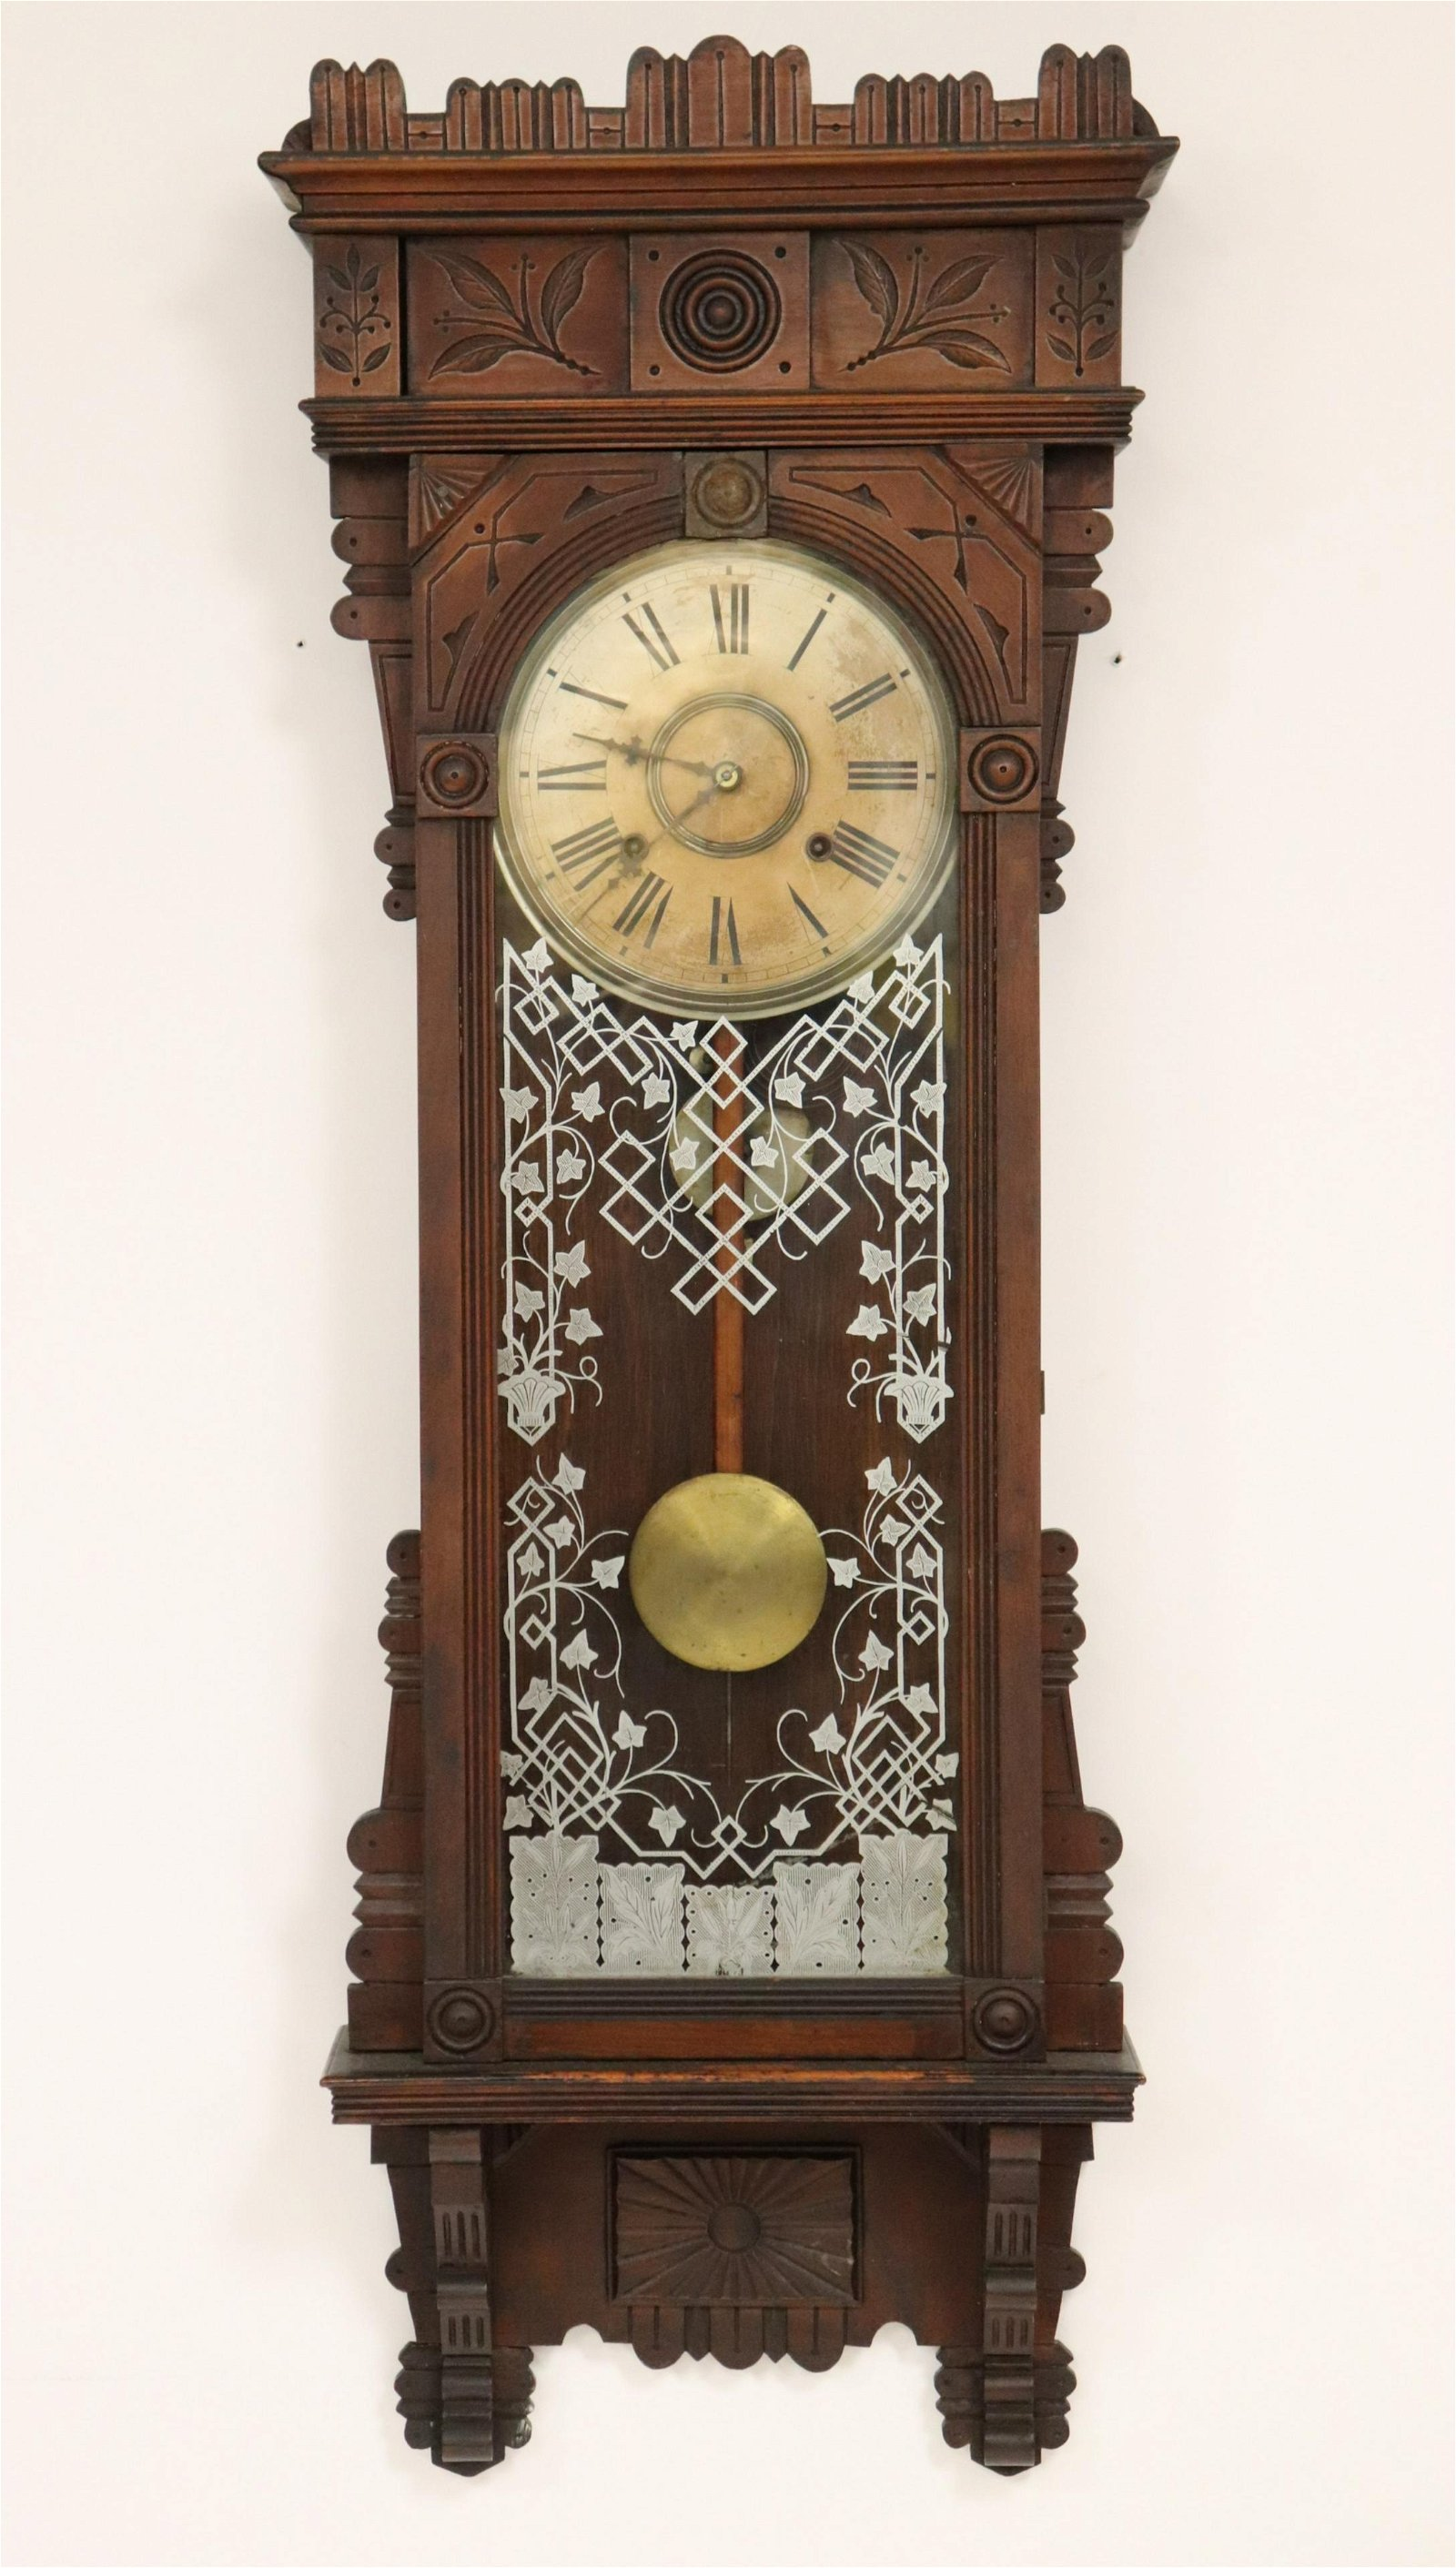 Sailsbury Walnut Wall Clock, 19th C.